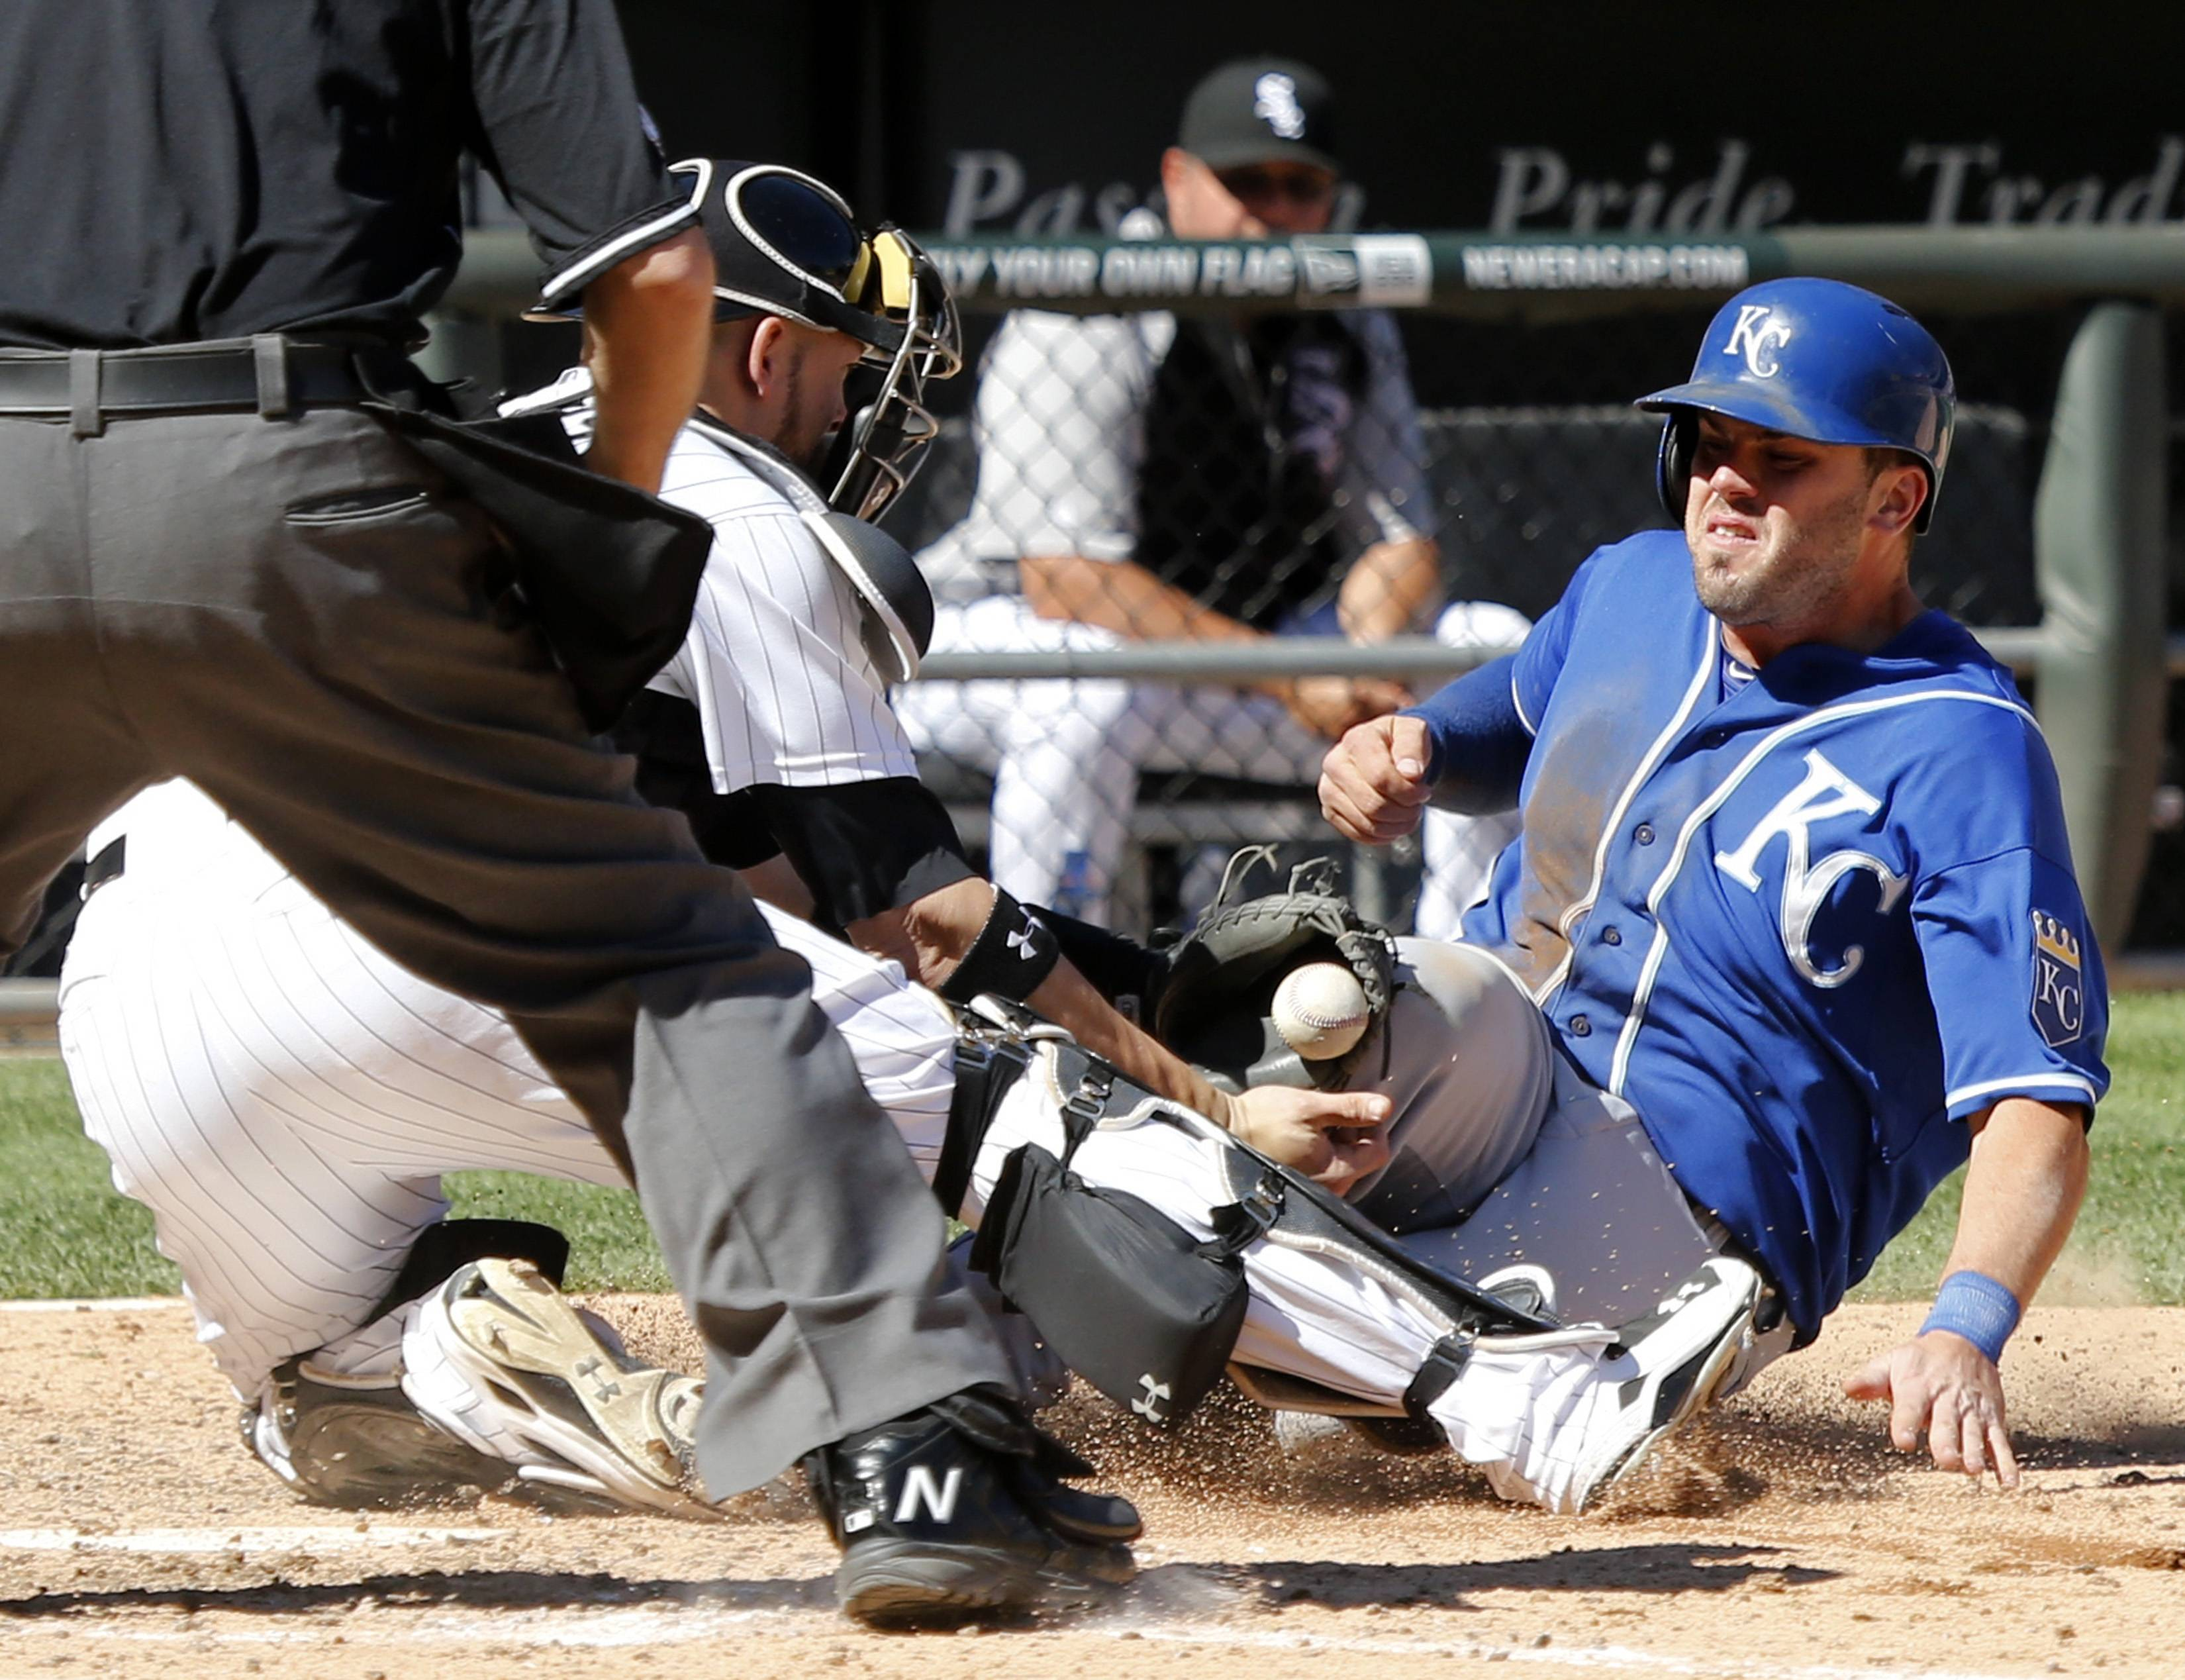 Kansas City Royals' Mike Moustakas knocks the ball out of the glove of Chicago White Sox catcher Tyler Flowers allowing Moustakas to score the winning run during the ninth inning Wednesday in Chicago.